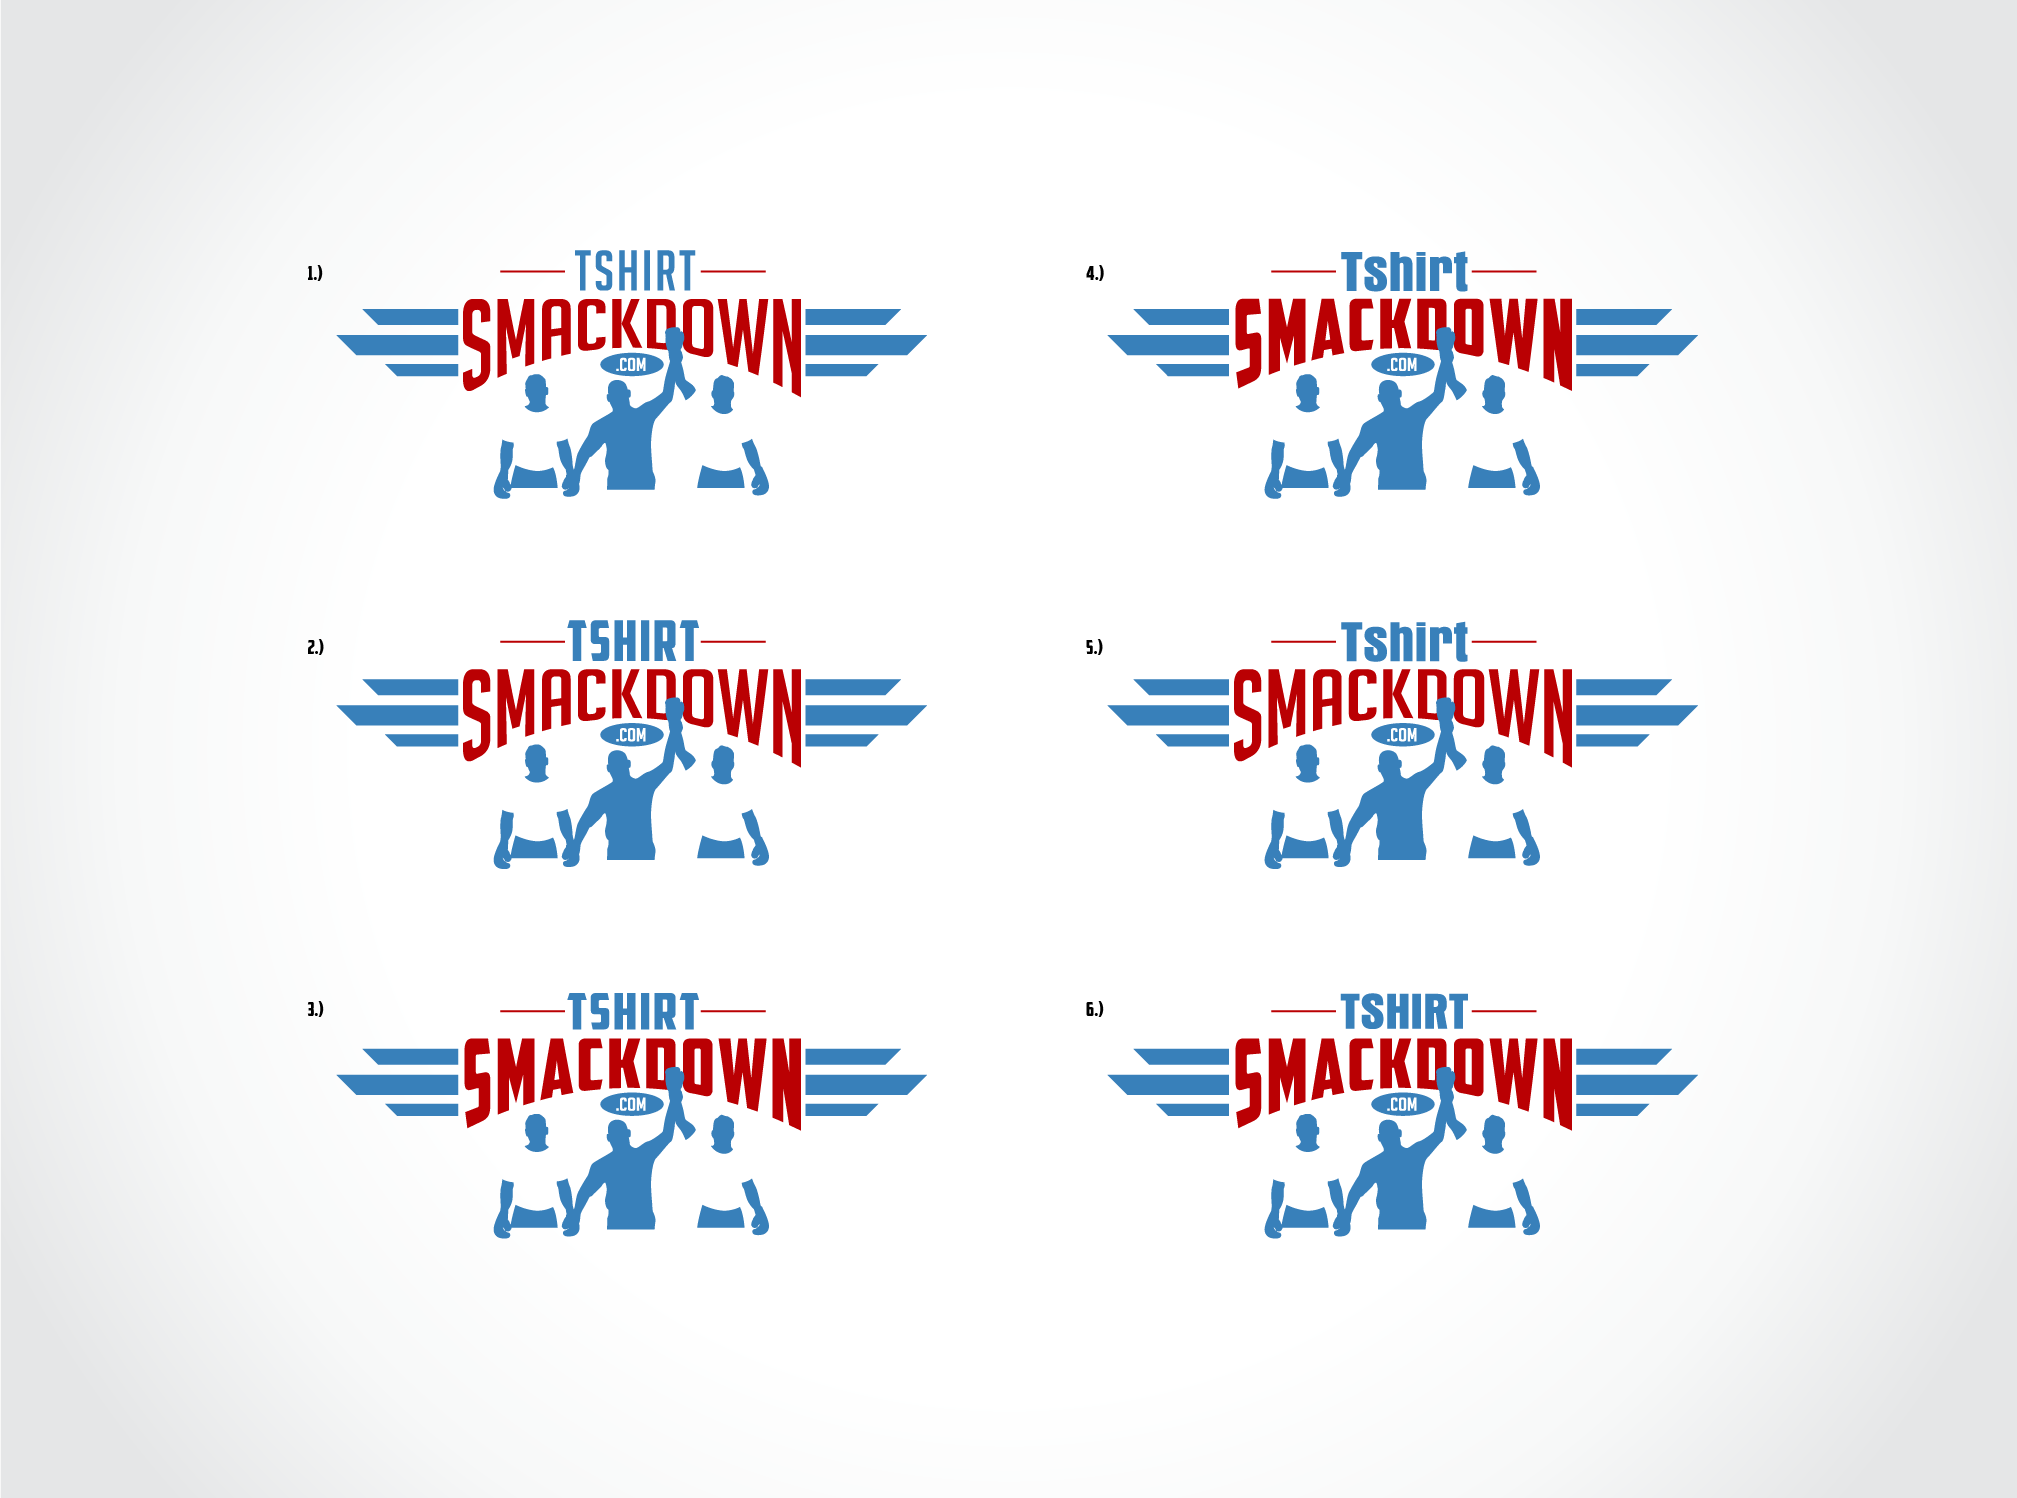 Help TshirtSmackdown.com with a new logo